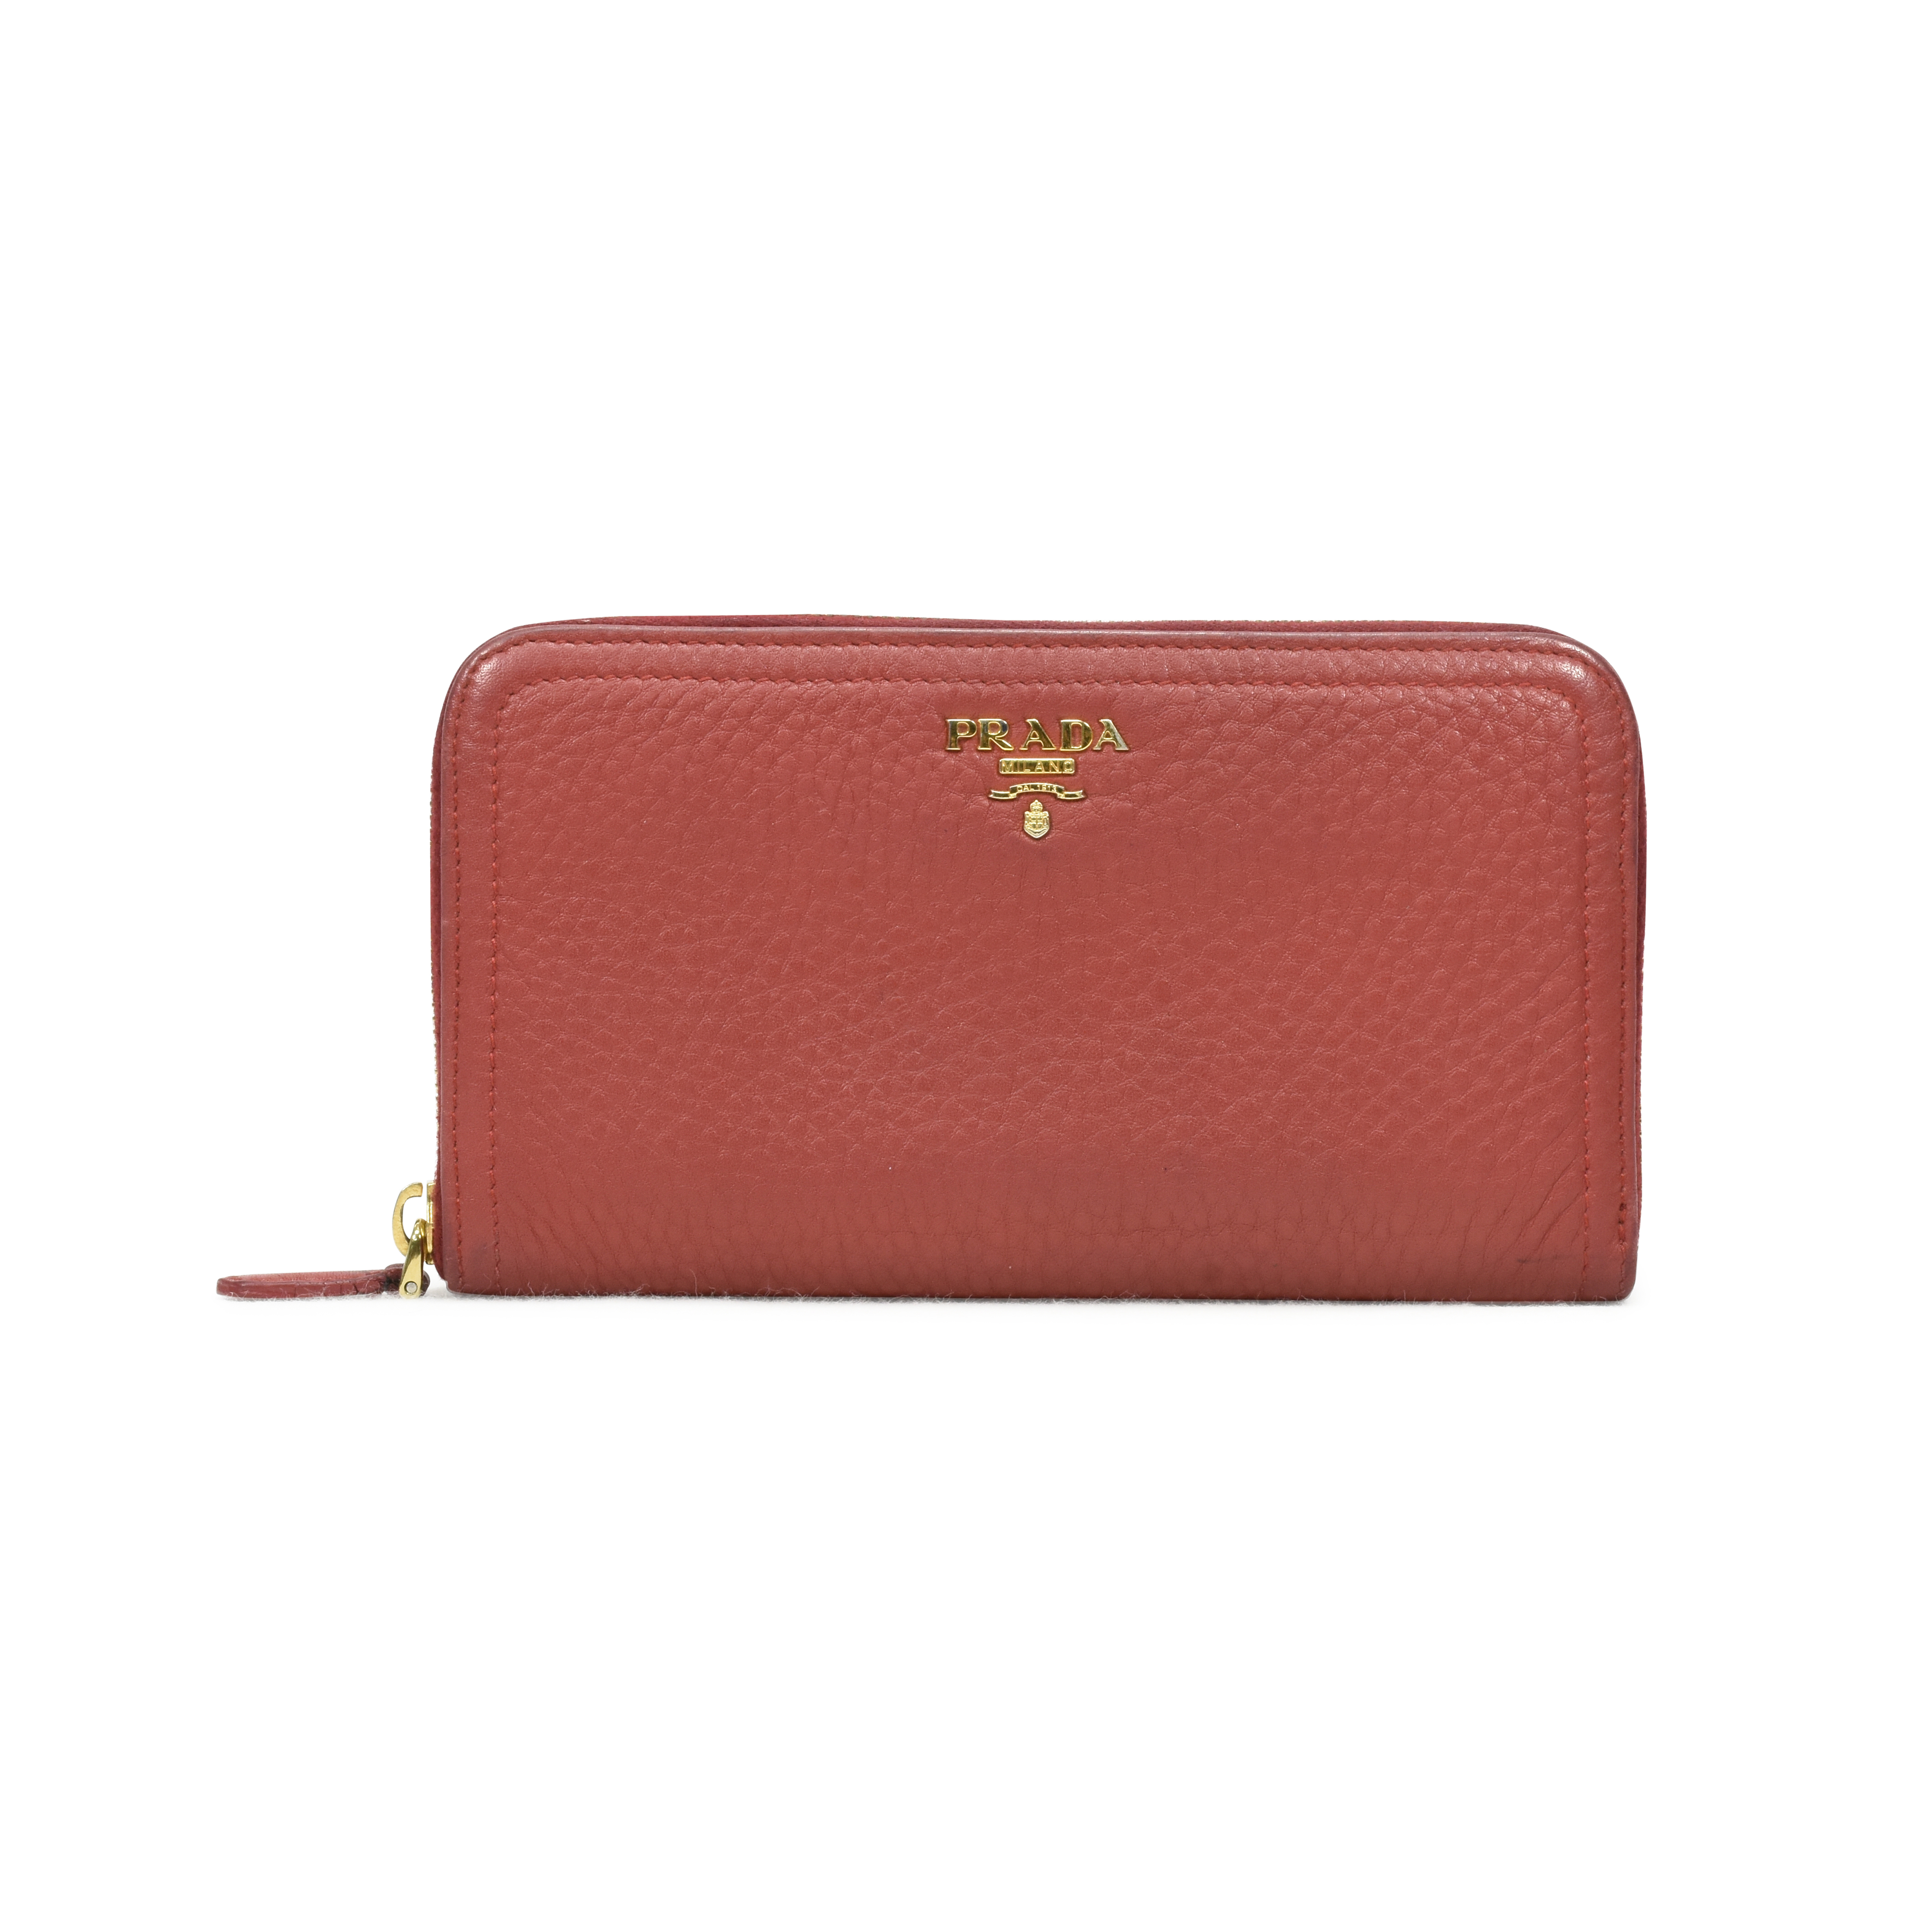 529314a0d9 Authentic Second Hand Prada Portafoglio Portamon Zipper Wallet  (PSS-375-00011) | THE FIFTH COLLECTION